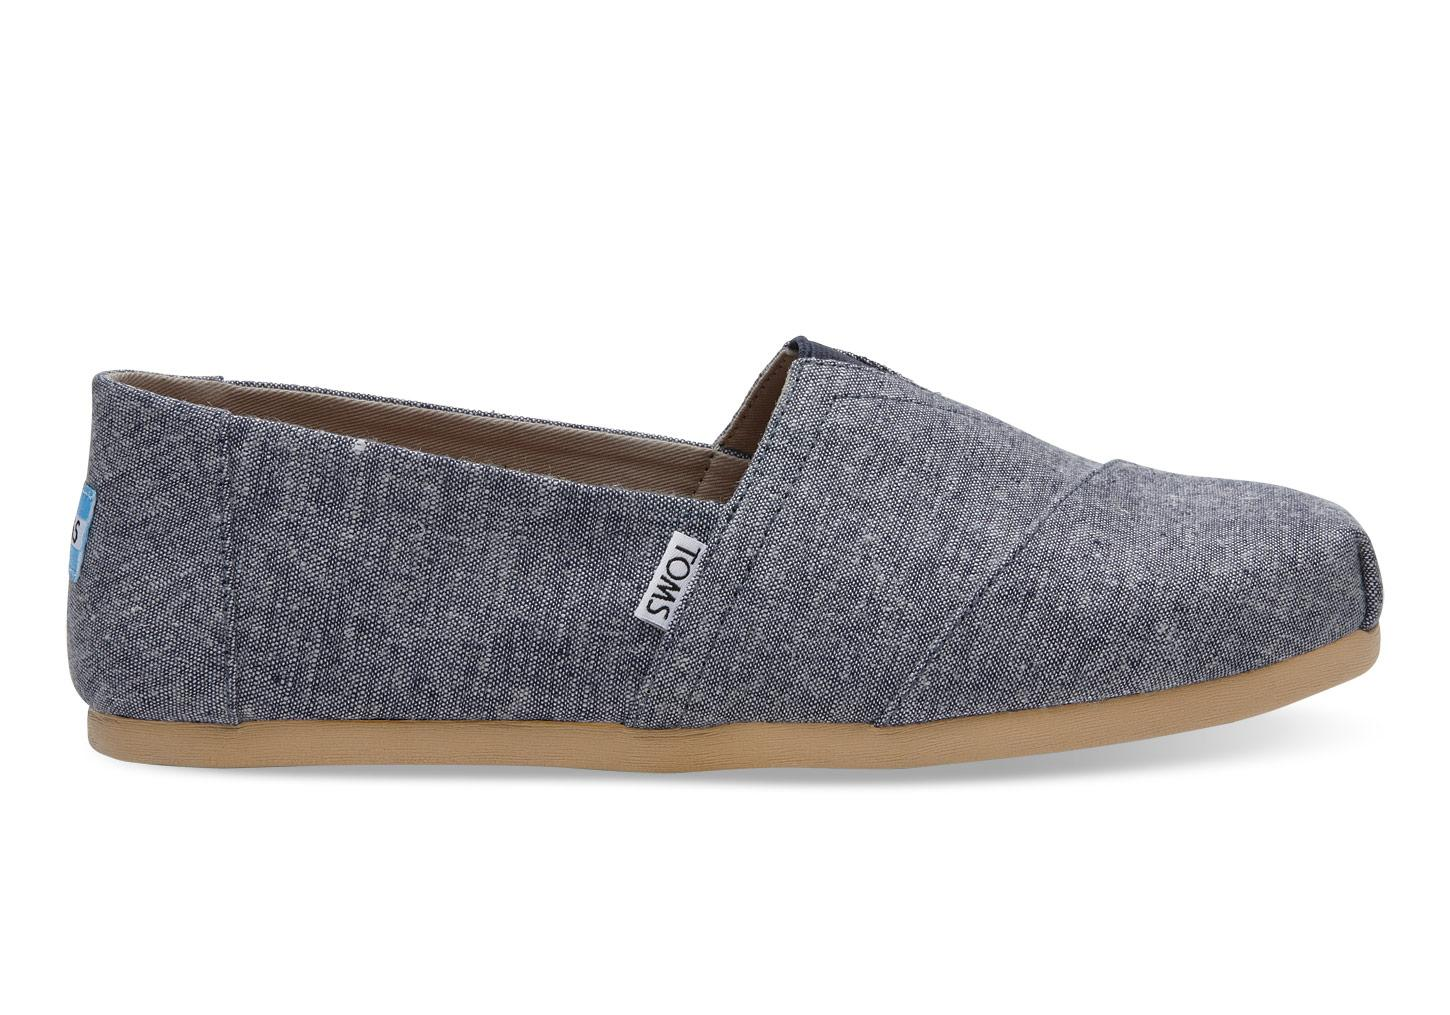 Toms Navy Slub Chambray Mens Classics In Blue For Men Lyst